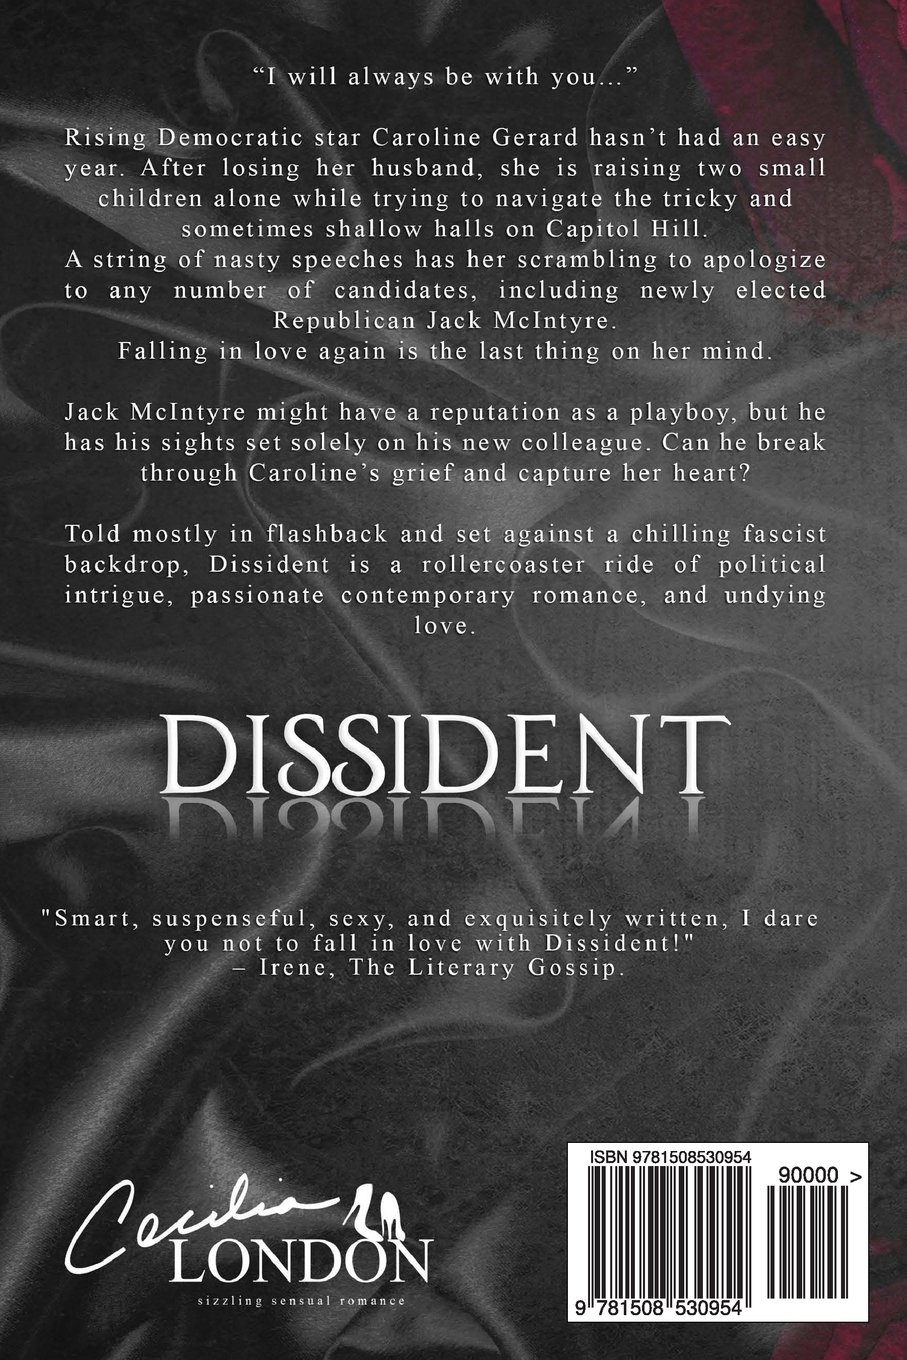 Dissident: Part One In The Bellator Saga: Cecilia London: 9781508530954:  Amazon: Books